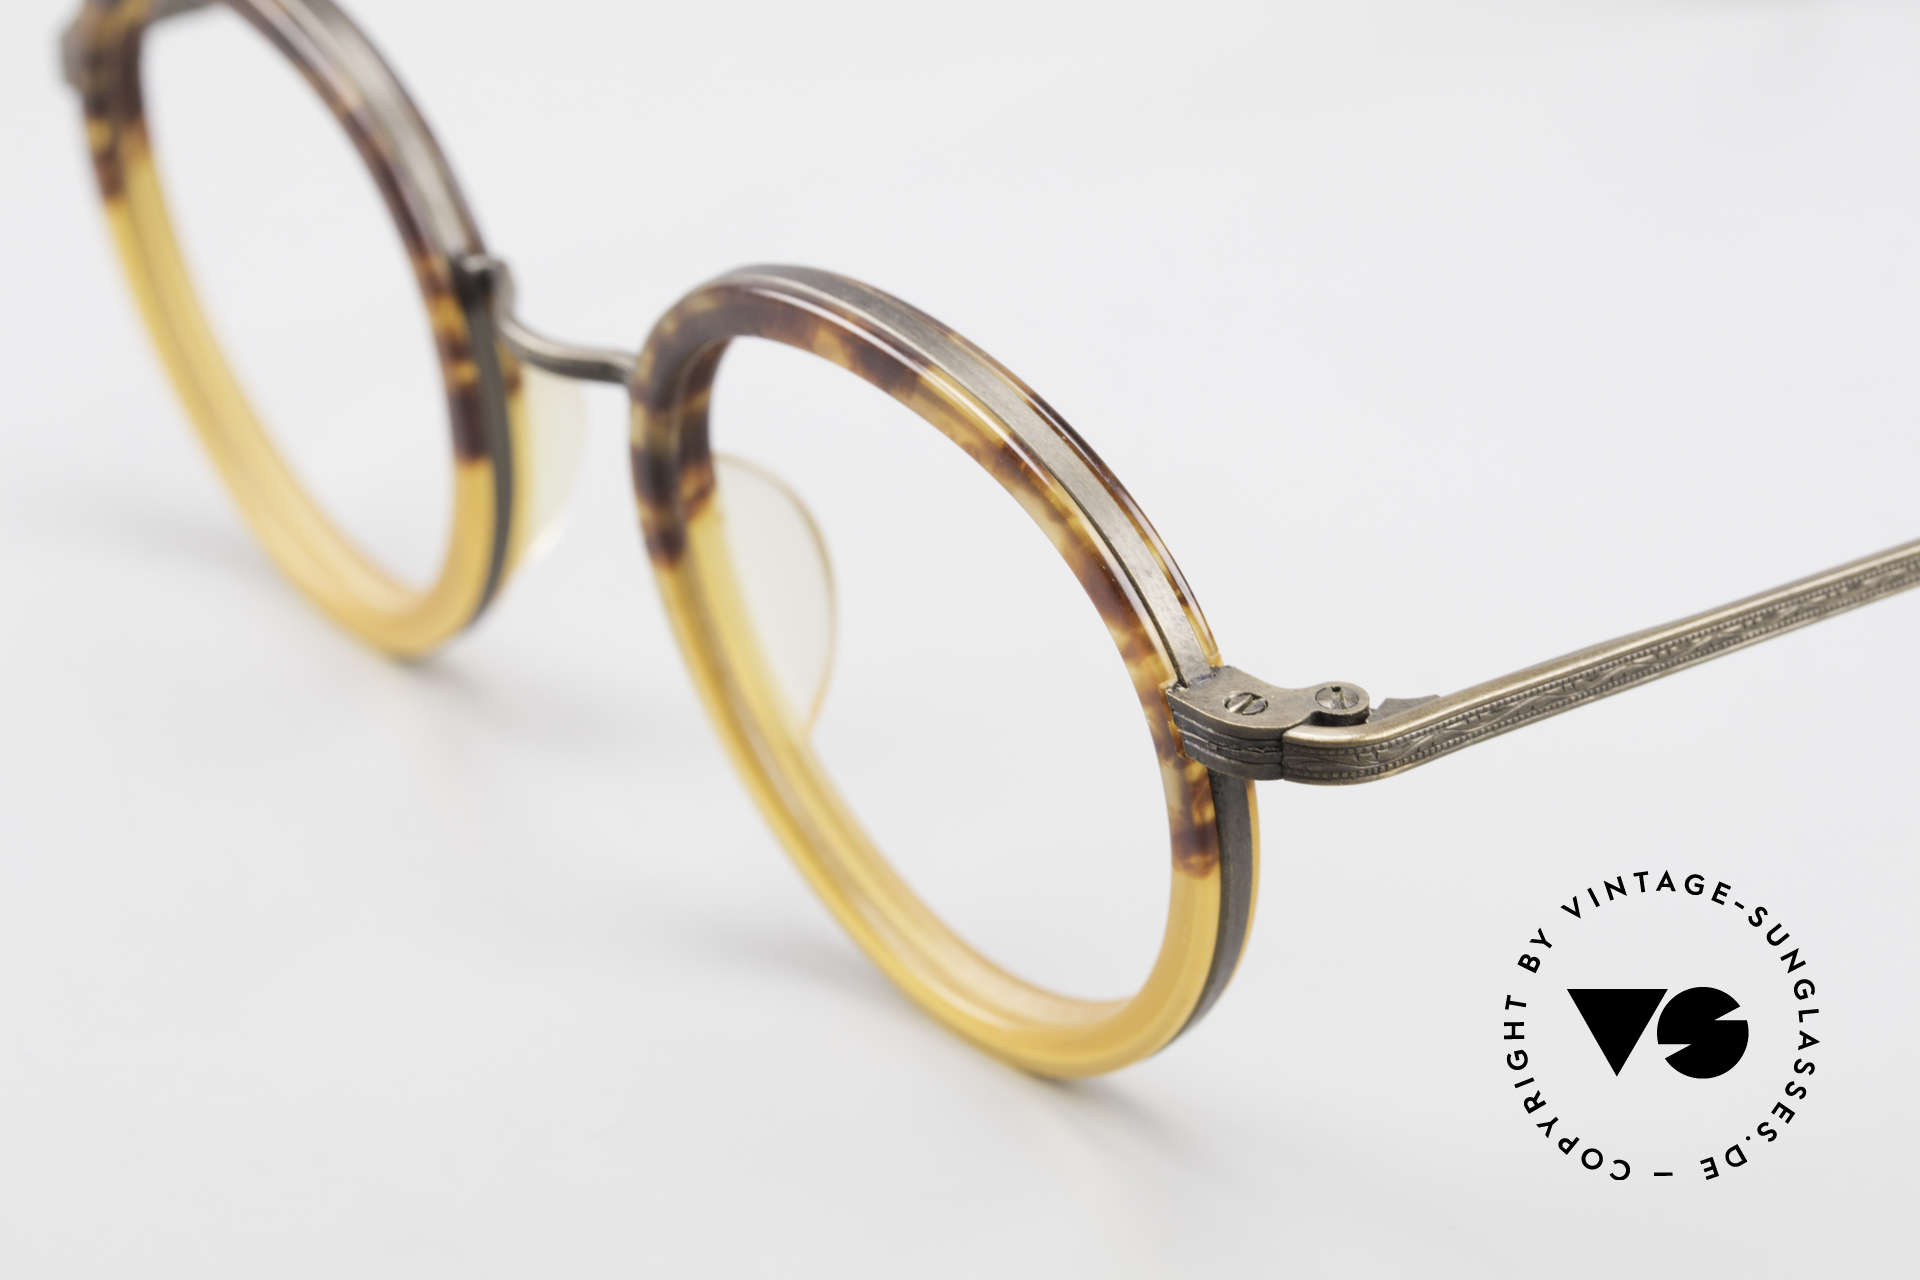 Beau Monde Rhodes Round Old Vintage Frame 90's, manufactured with the same tools like Matsuda (Japan), Made for Men and Women